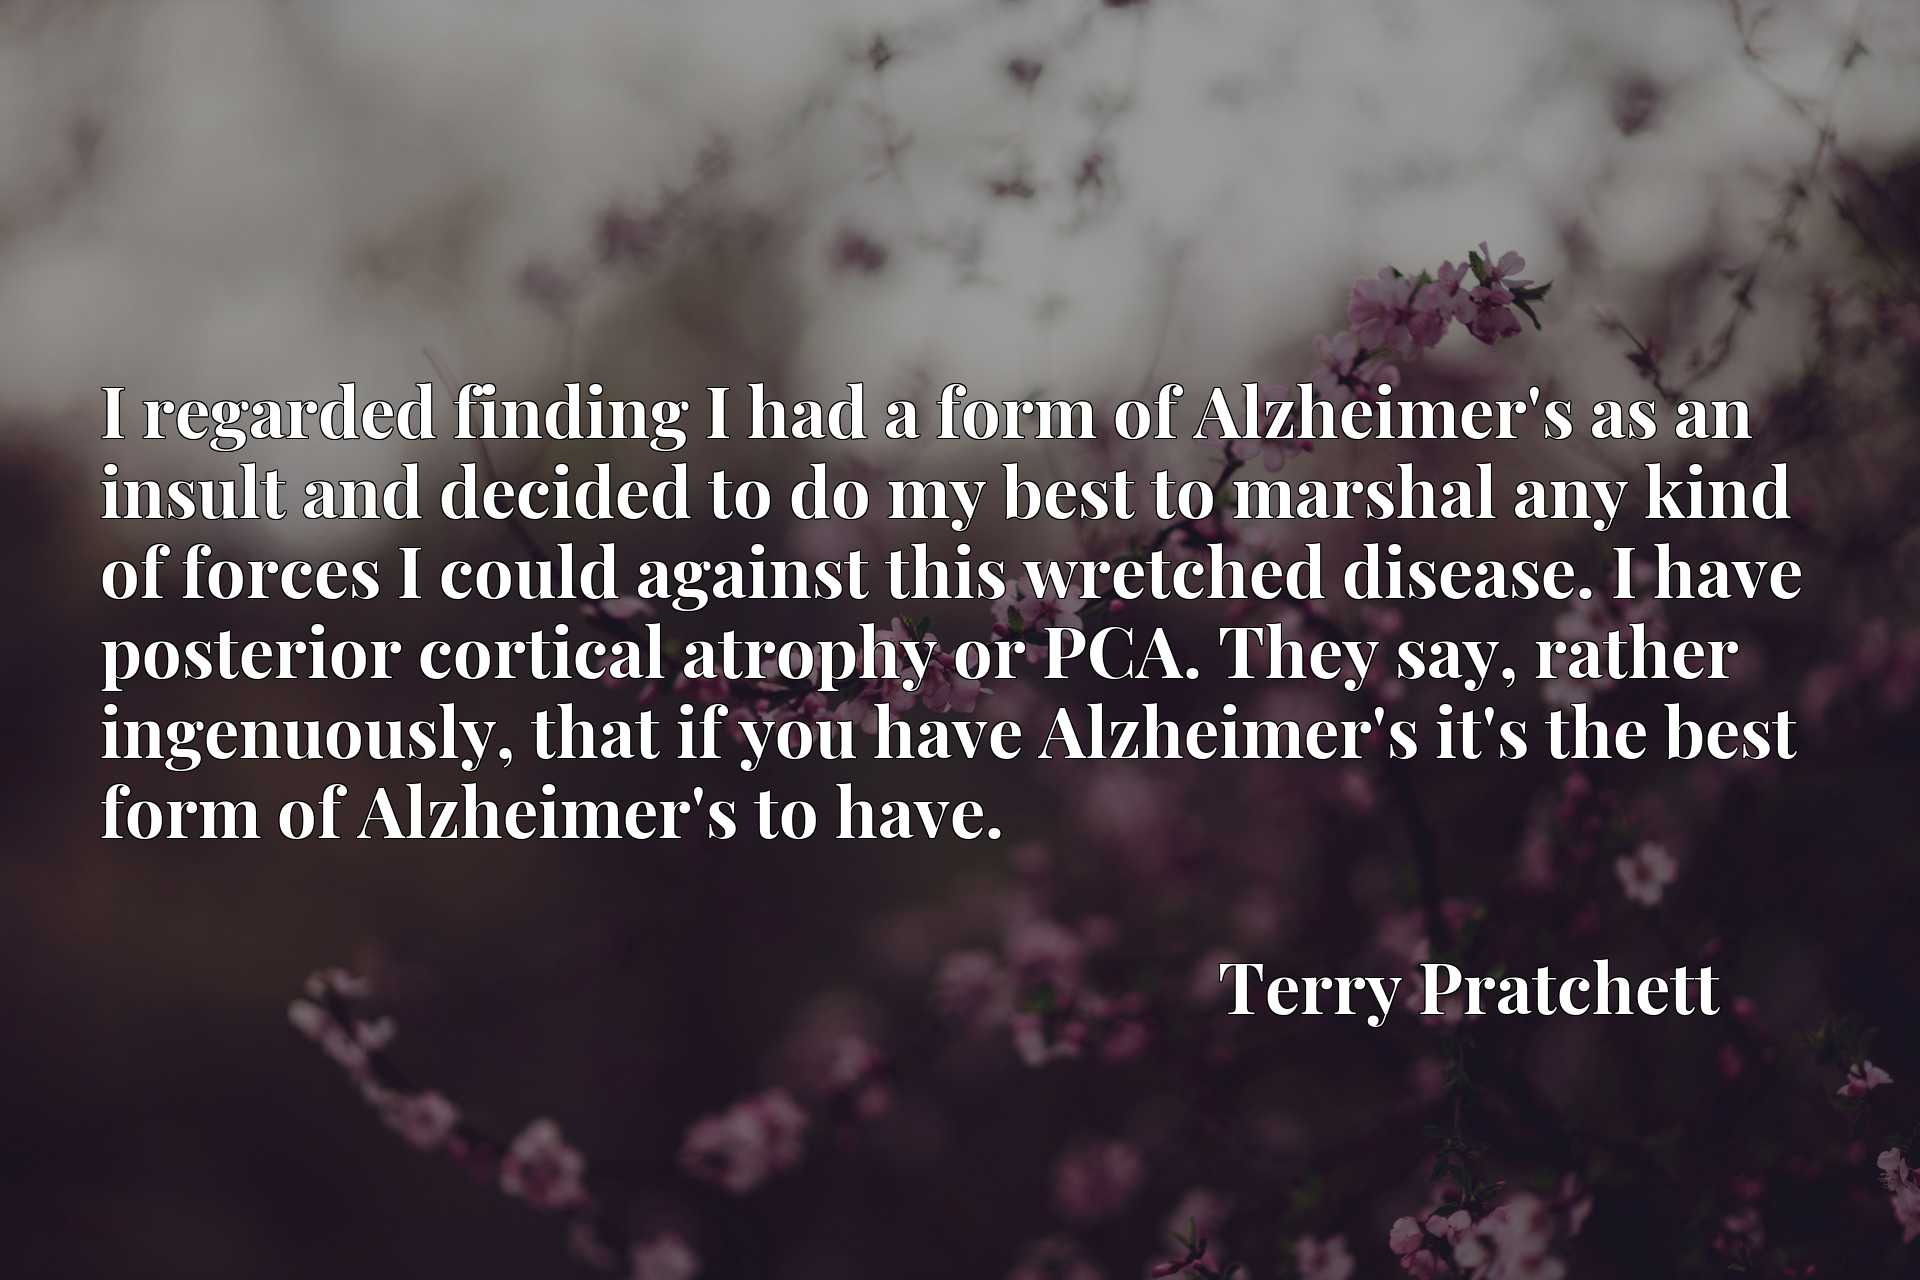 I regarded finding I had a form of Alzheimer's as an insult and decided to do my best to marshal any kind of forces I could against this wretched disease. I have posterior cortical atrophy or PCA. They say, rather ingenuously, that if you have Alzheimer's it's the best form of Alzheimer's to have.